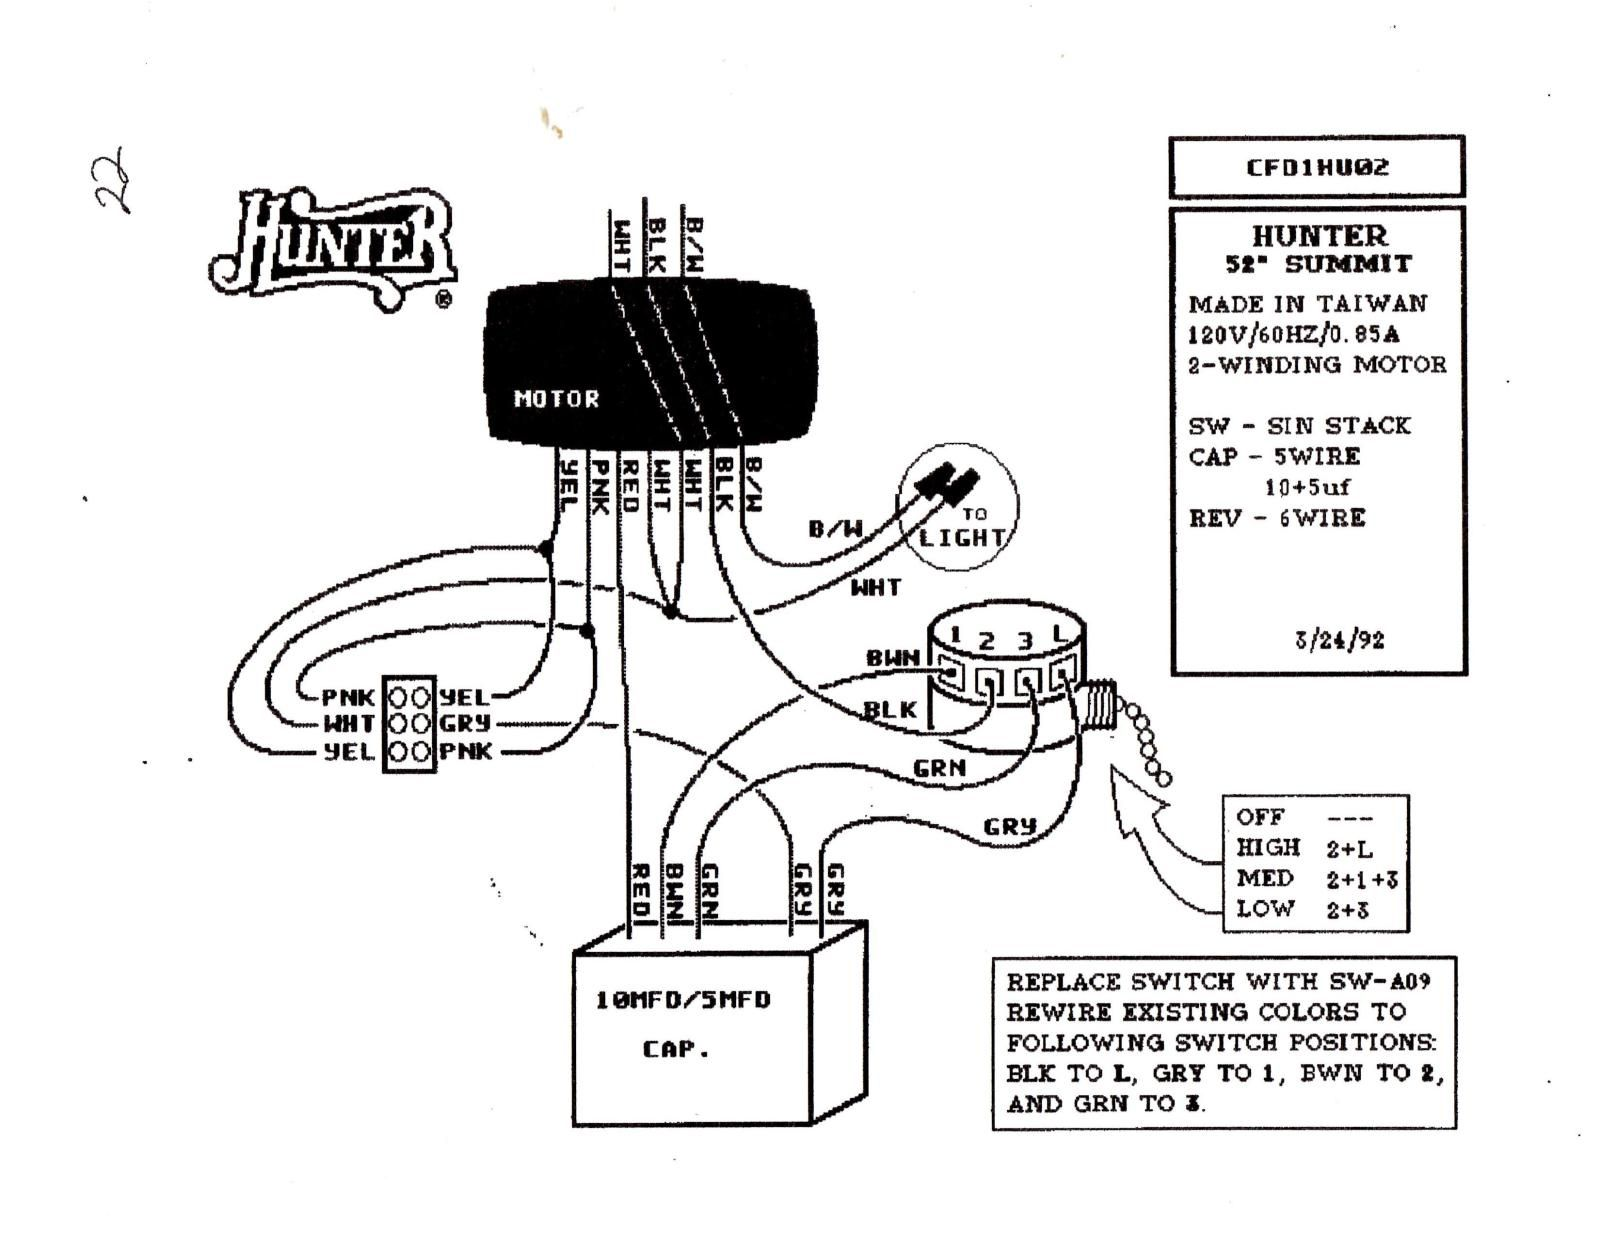 medium resolution of hunter ceiling fan speed switch wiring diagram